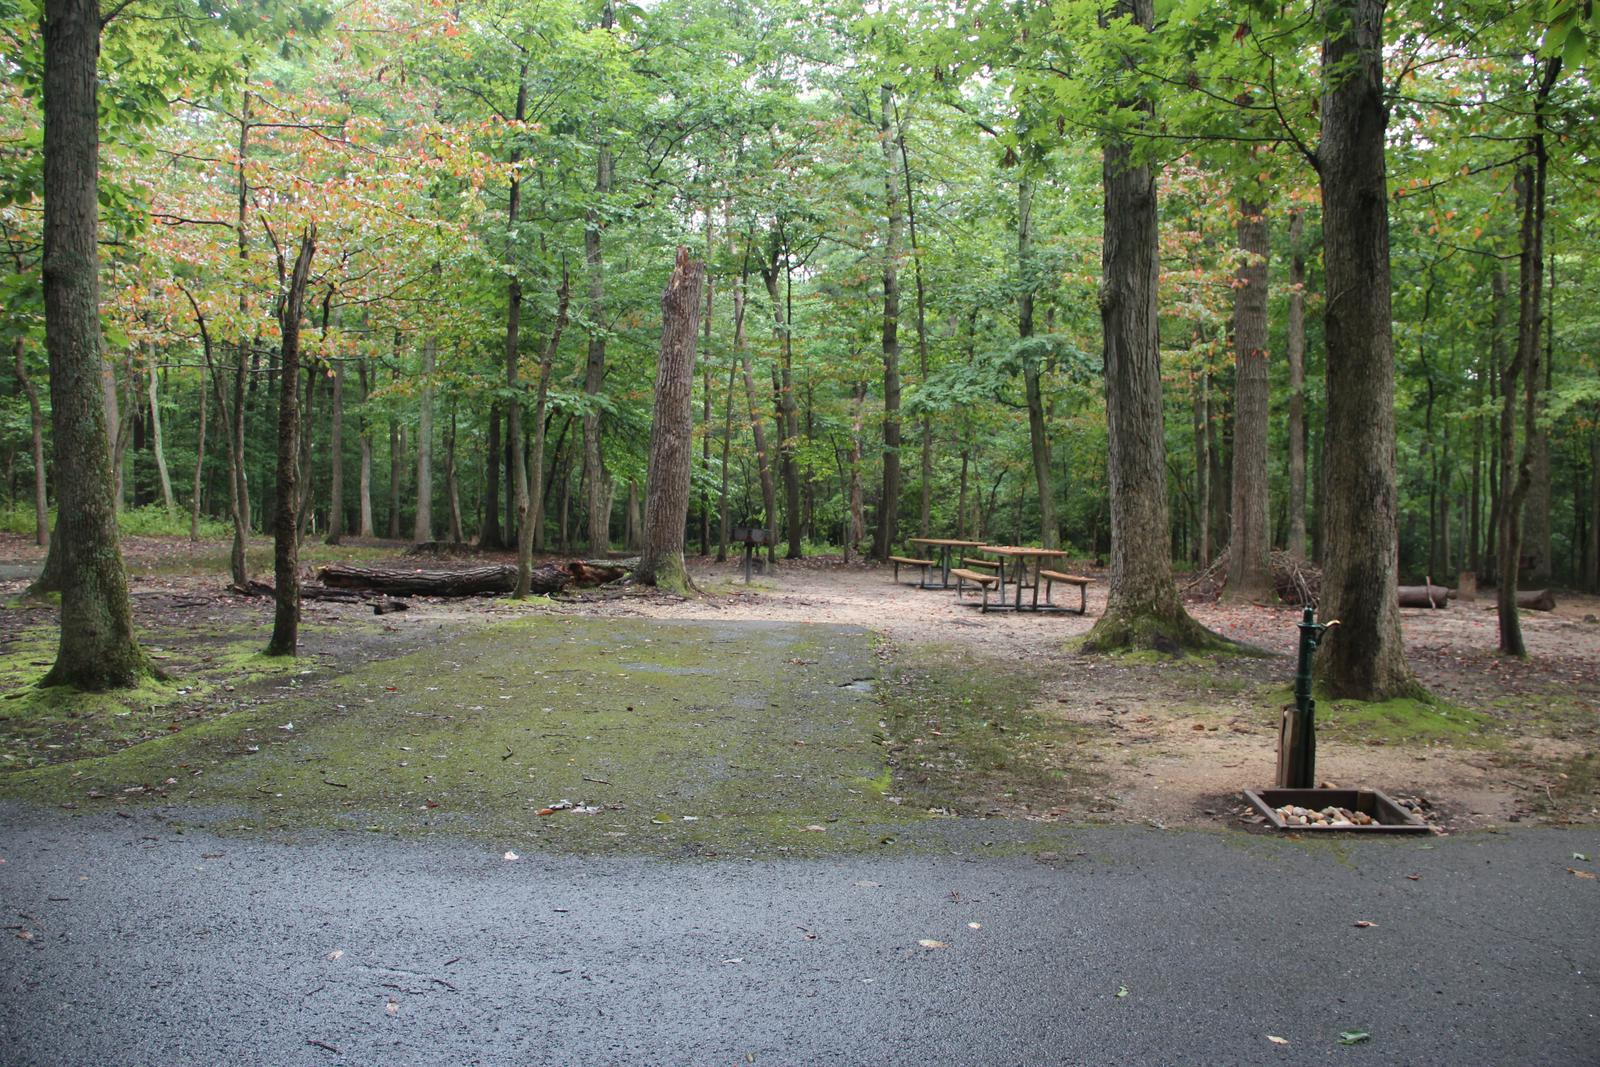 Greenbelt Park Campground Site 011